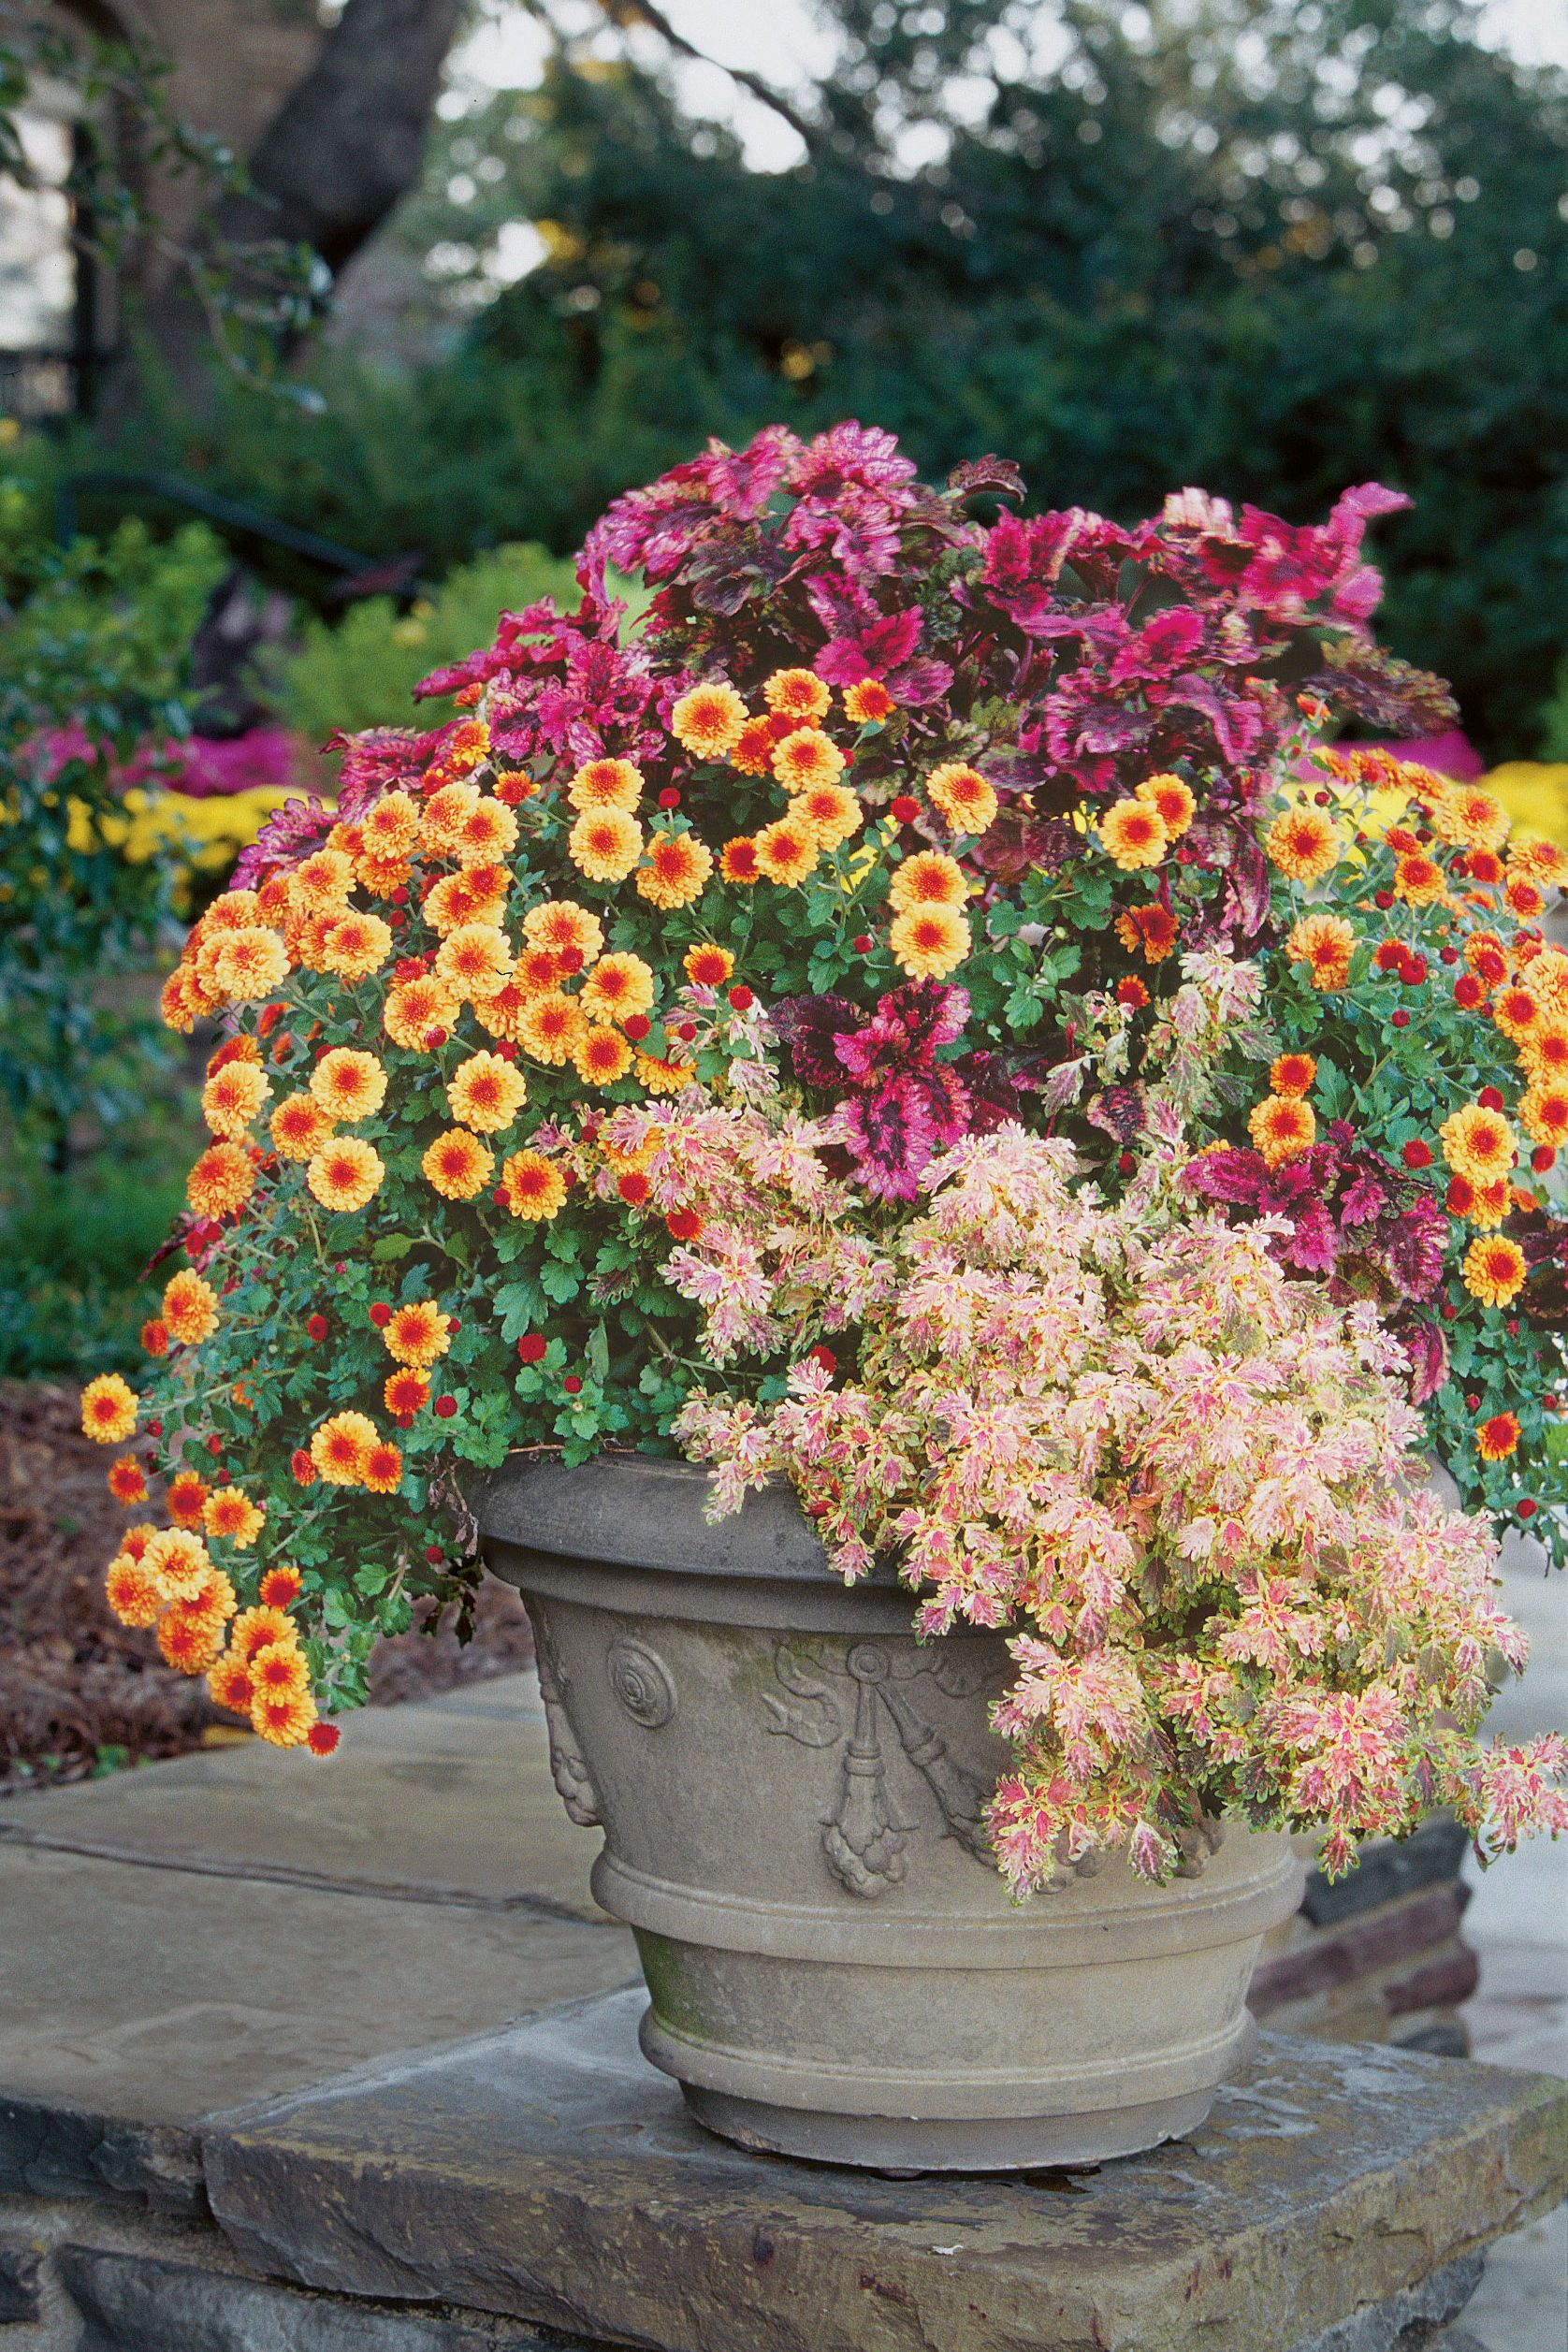 Cheery Chrysanthemums Best Ideas for Fall